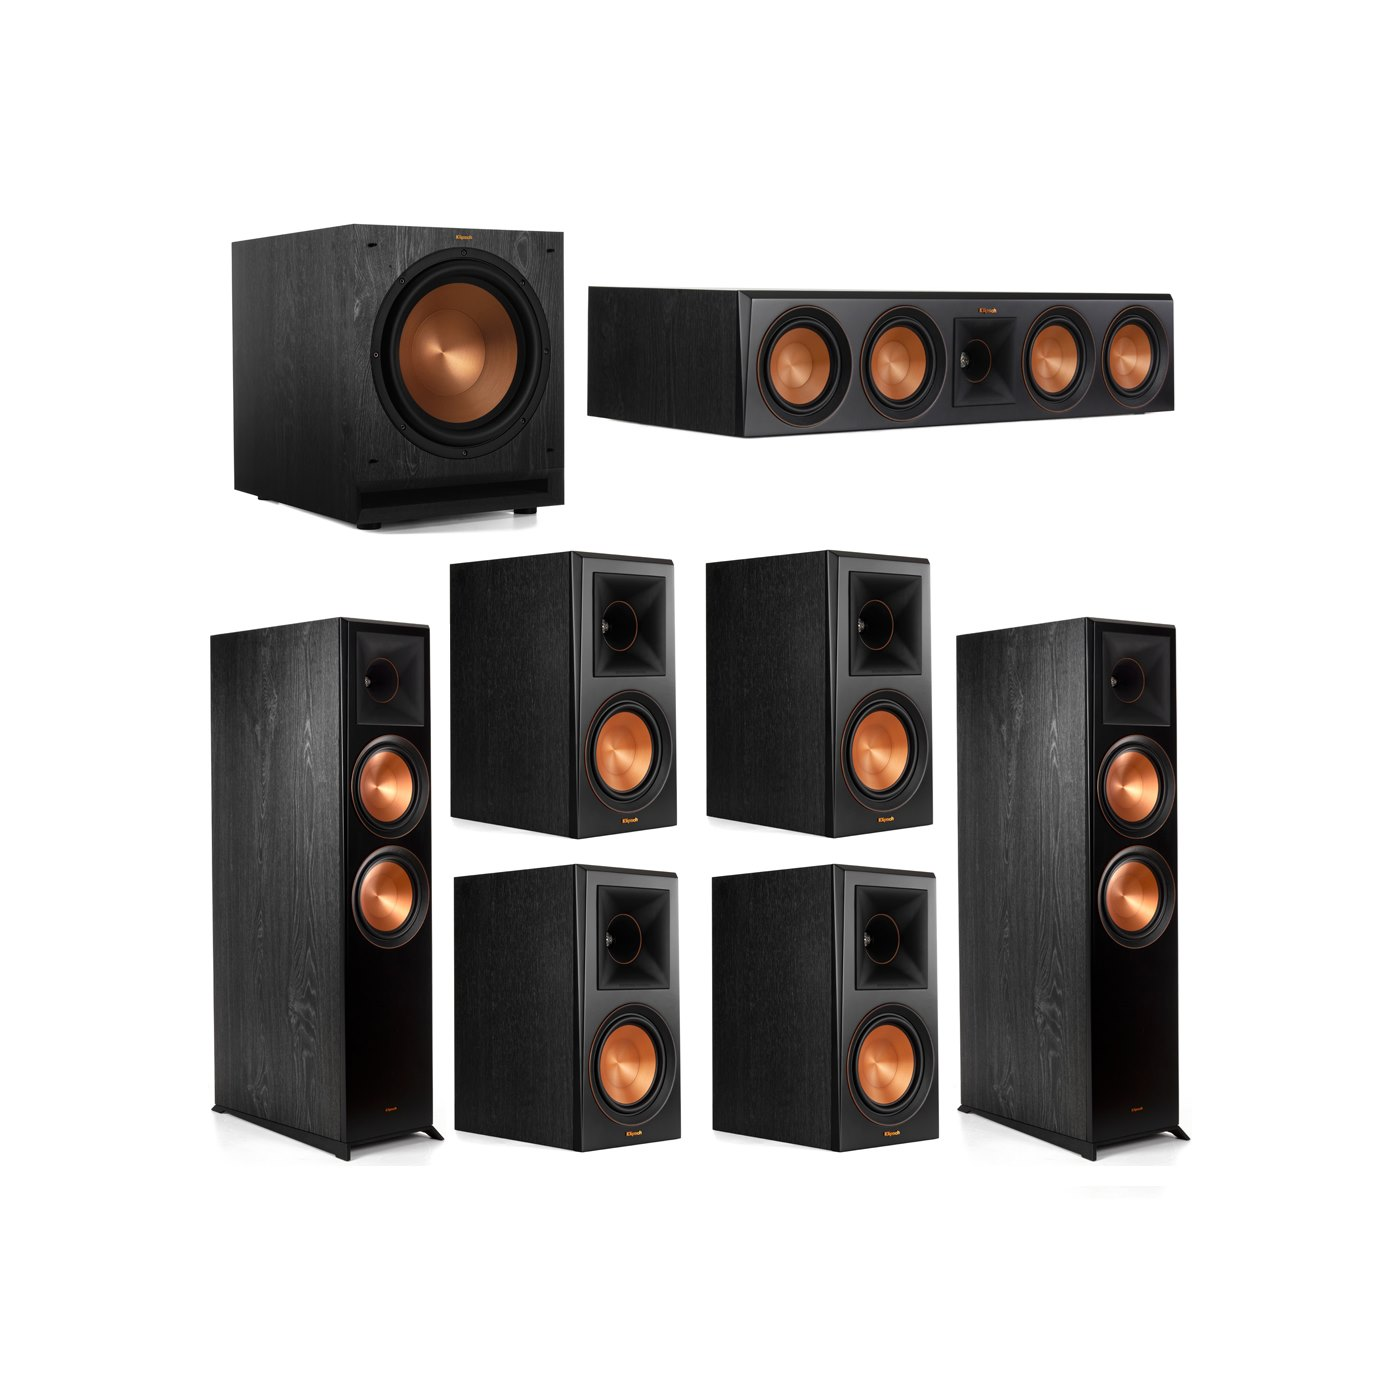 Klipsch 7.1 System with 2 RP-8000F Floorstanding Speakers, 1 Klipsch RP-504C Center Speaker, 4 Klipsch RP-600M Surround Speakers, 1 Klipsch SPL-120 Subwoofer